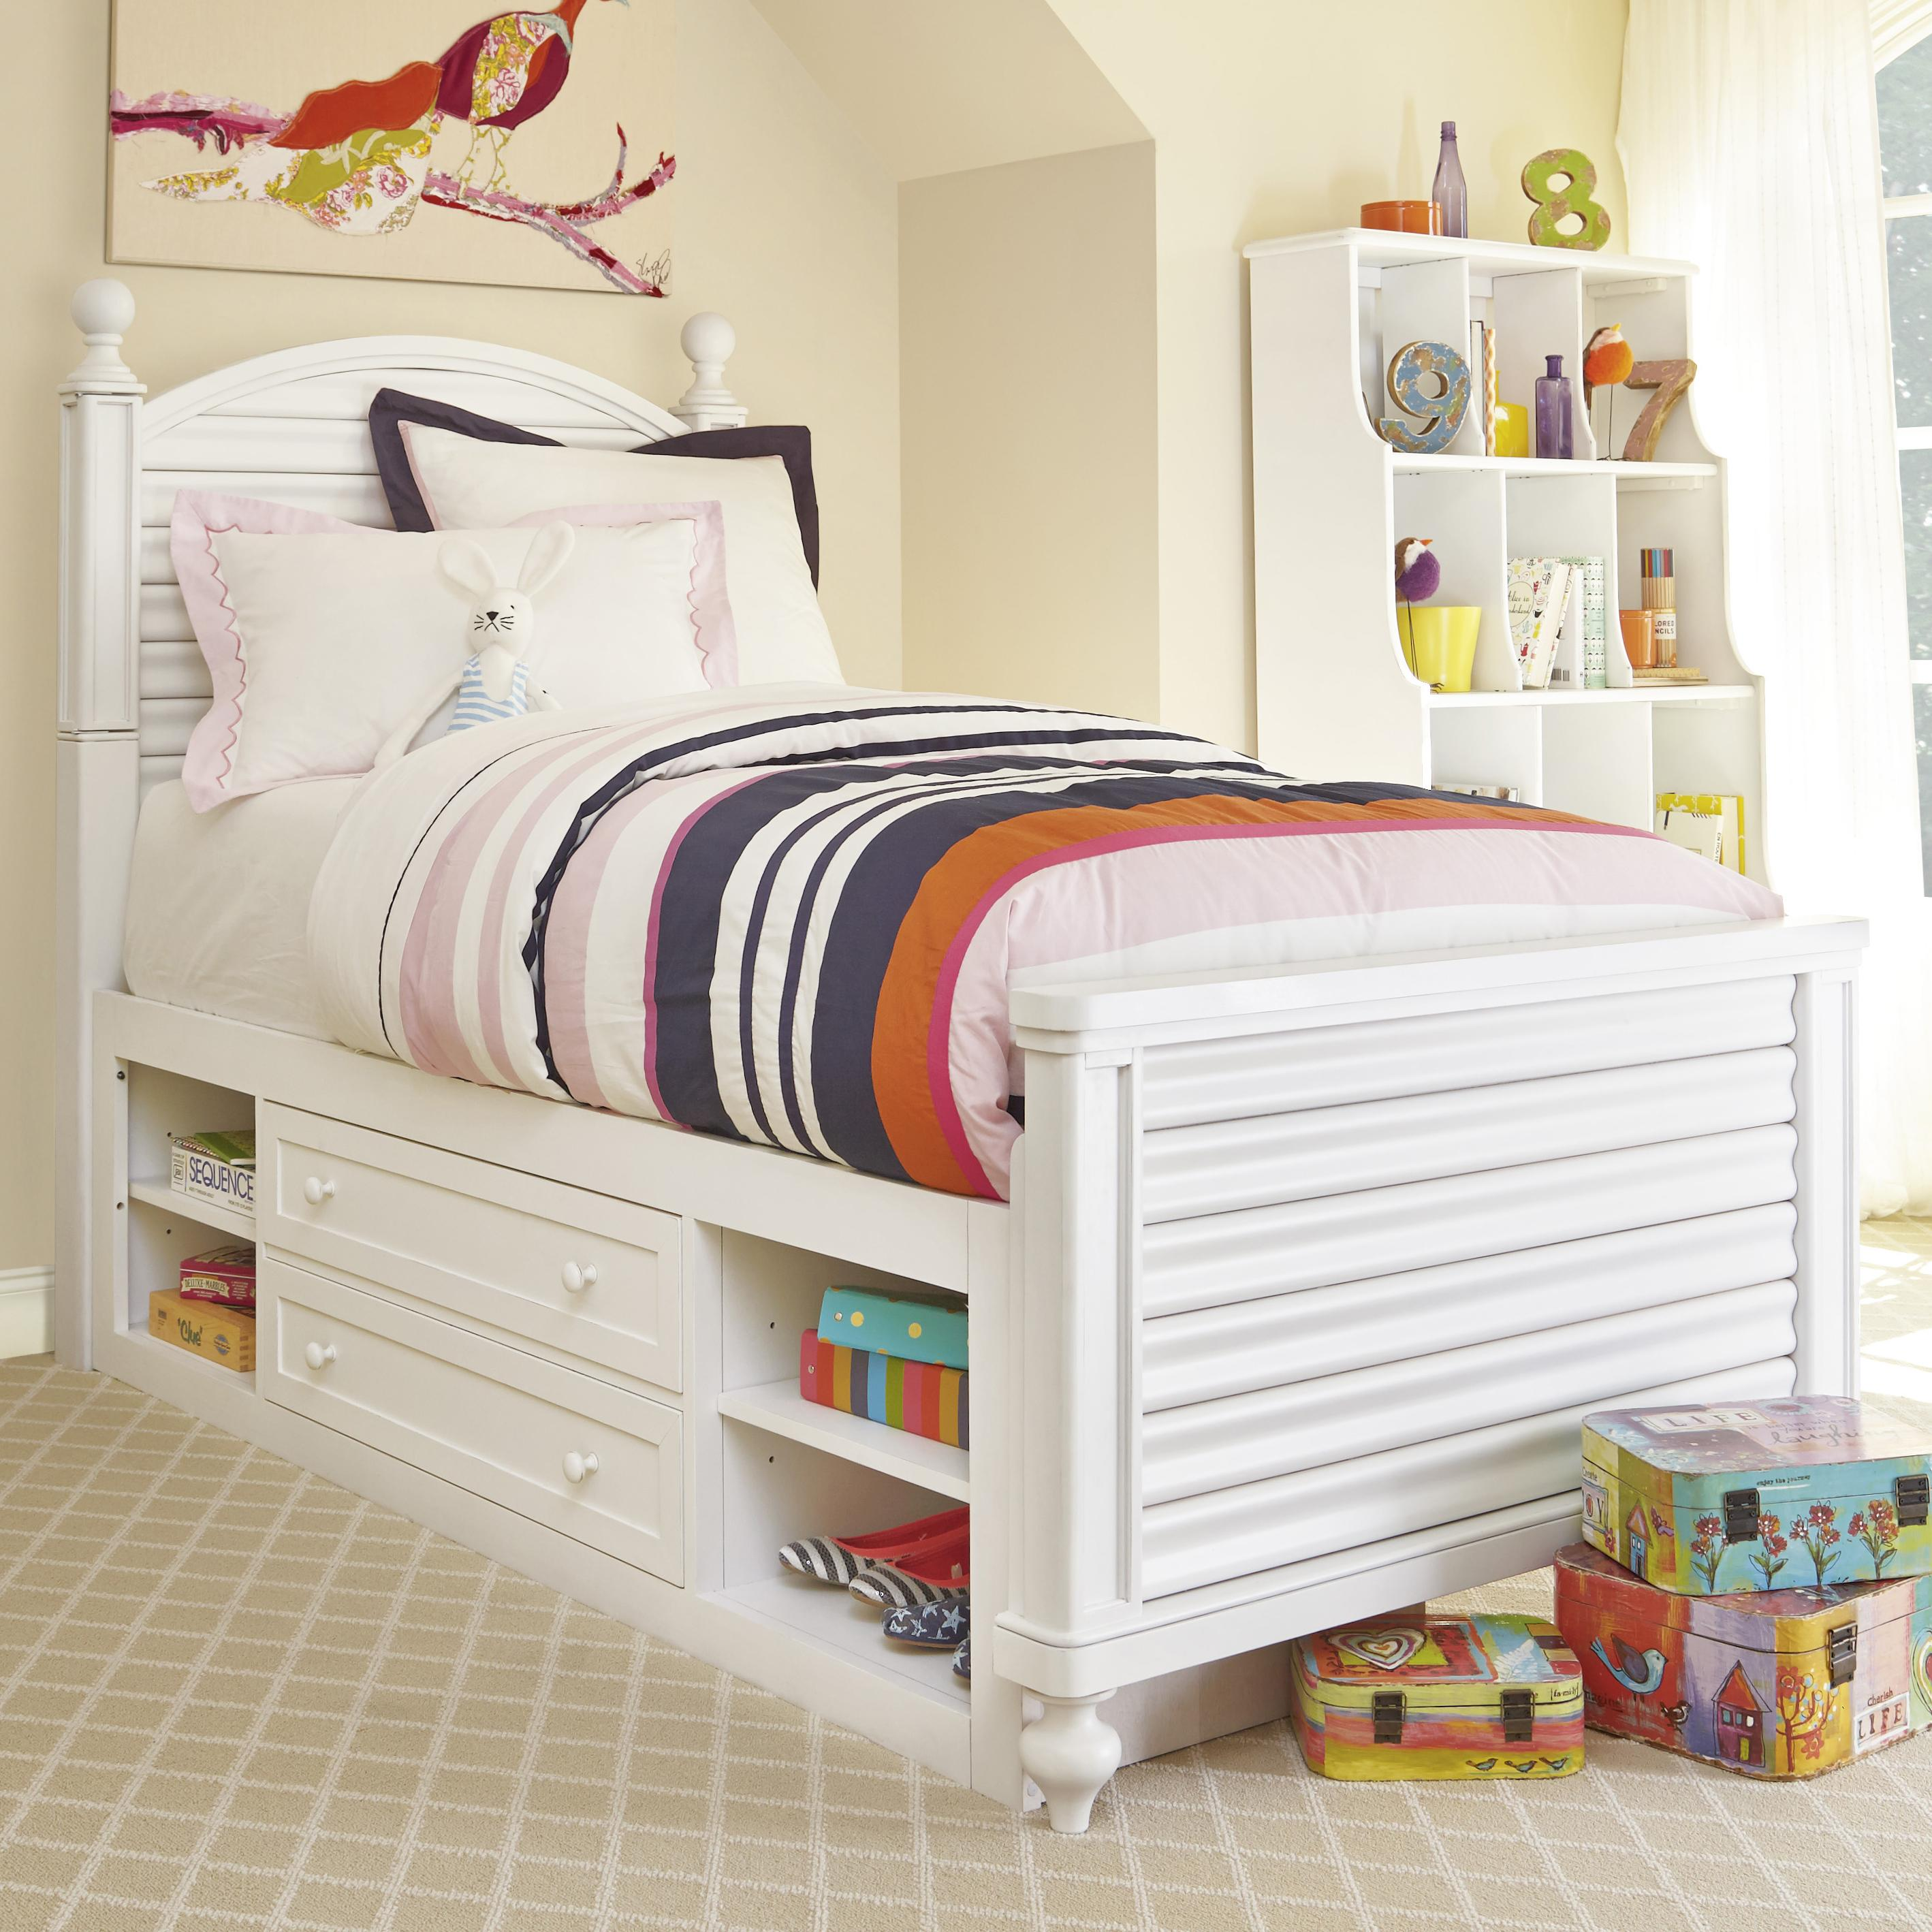 Smartstuff Black and White Twin Bed - Item Number: 437A038+061